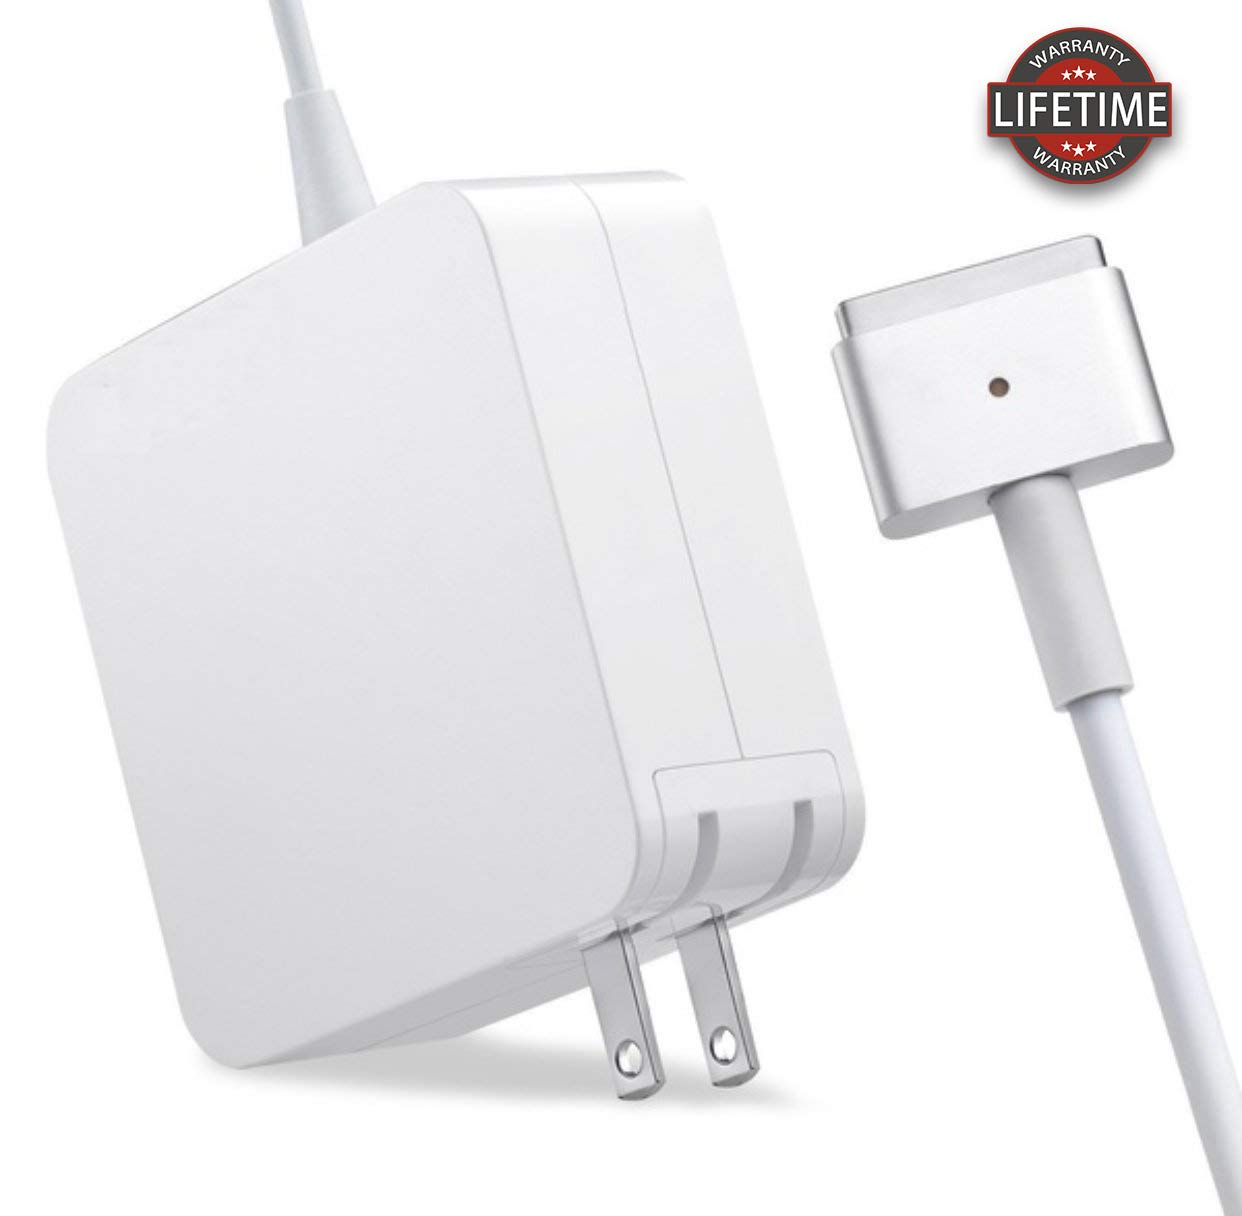 Mac Book Air Charger, Great Replacement 45W Magsafe 2 Magnetic T-Tip Power Adapter Charger for Mac Book Air 11-inch and 13-inch (Mid 2012 or Later)(45T) ... (45T) by CLUU (Image #1)